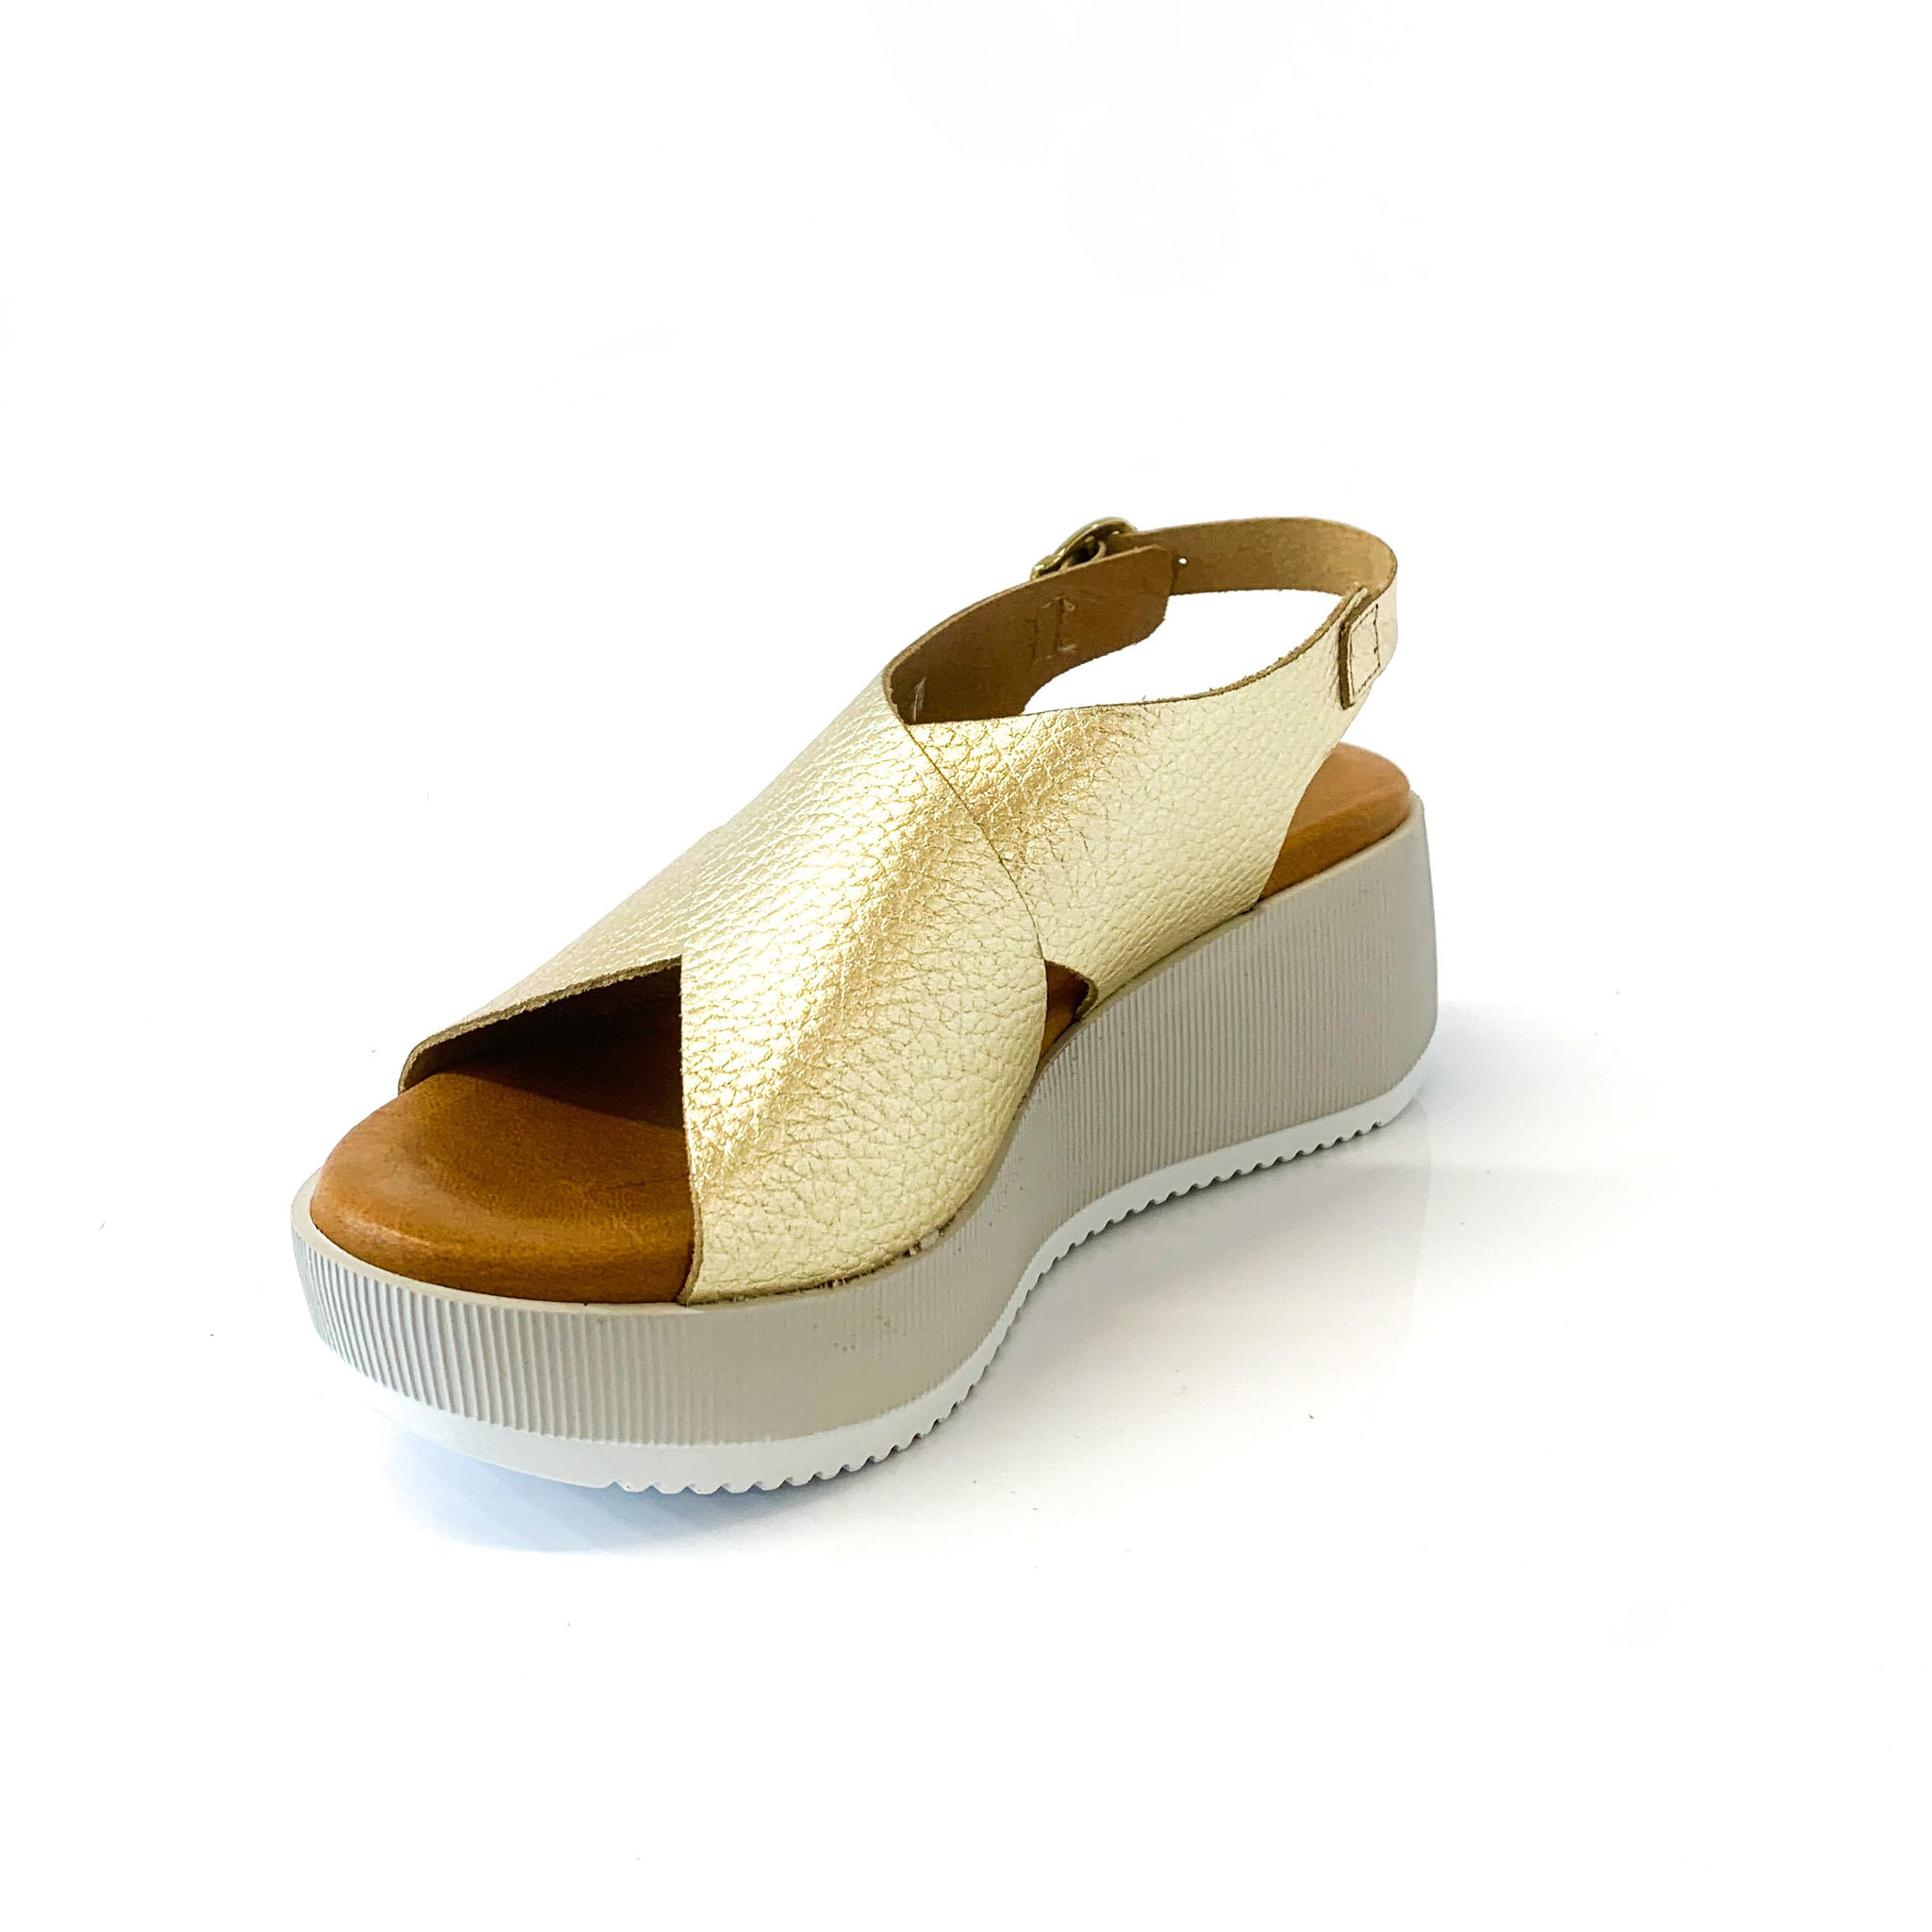 SALLY | Gold Platform Sandals - TrystShoes